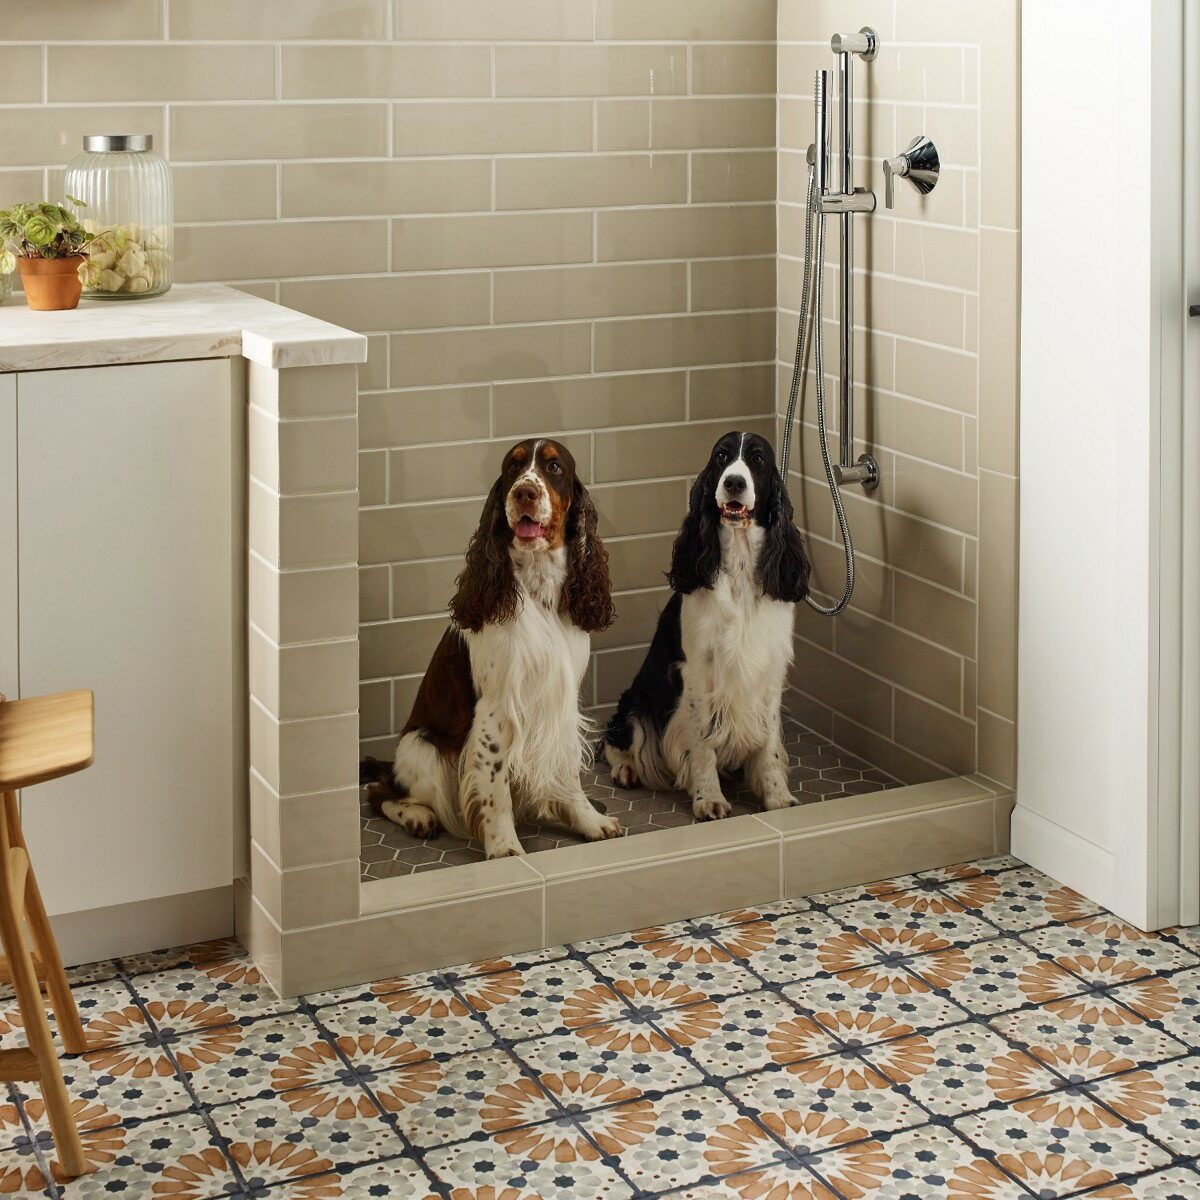 Two dogs on a tile floor   Flooring 101